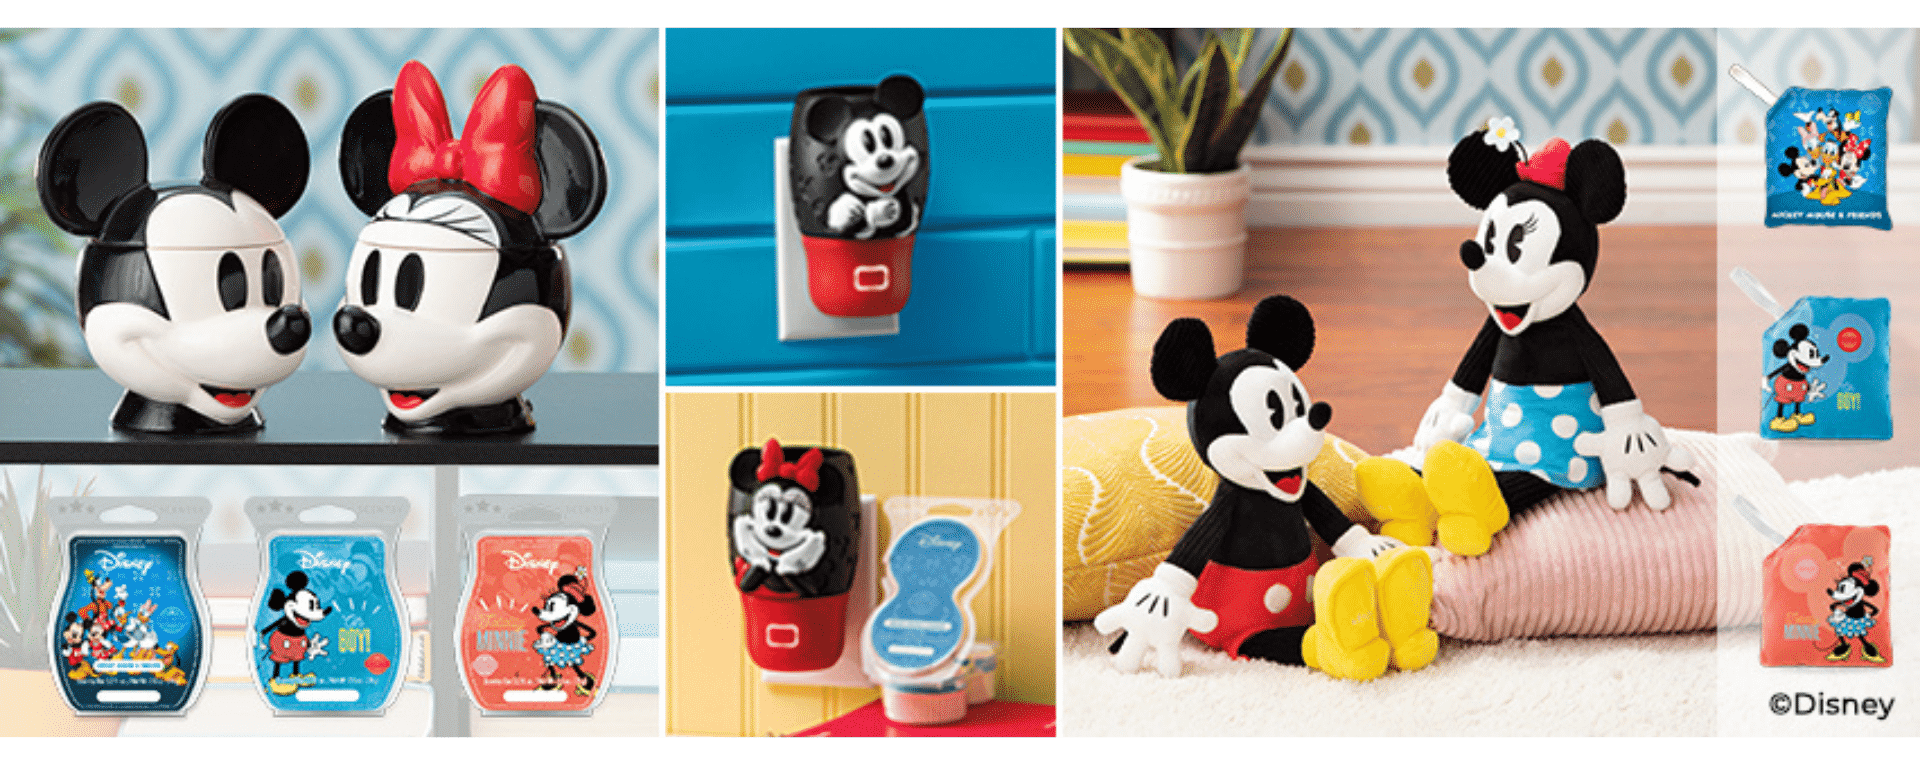 Scentsy Disney Collection Banner   The Disney Collection From Scentsy   New Fall 2021 Products